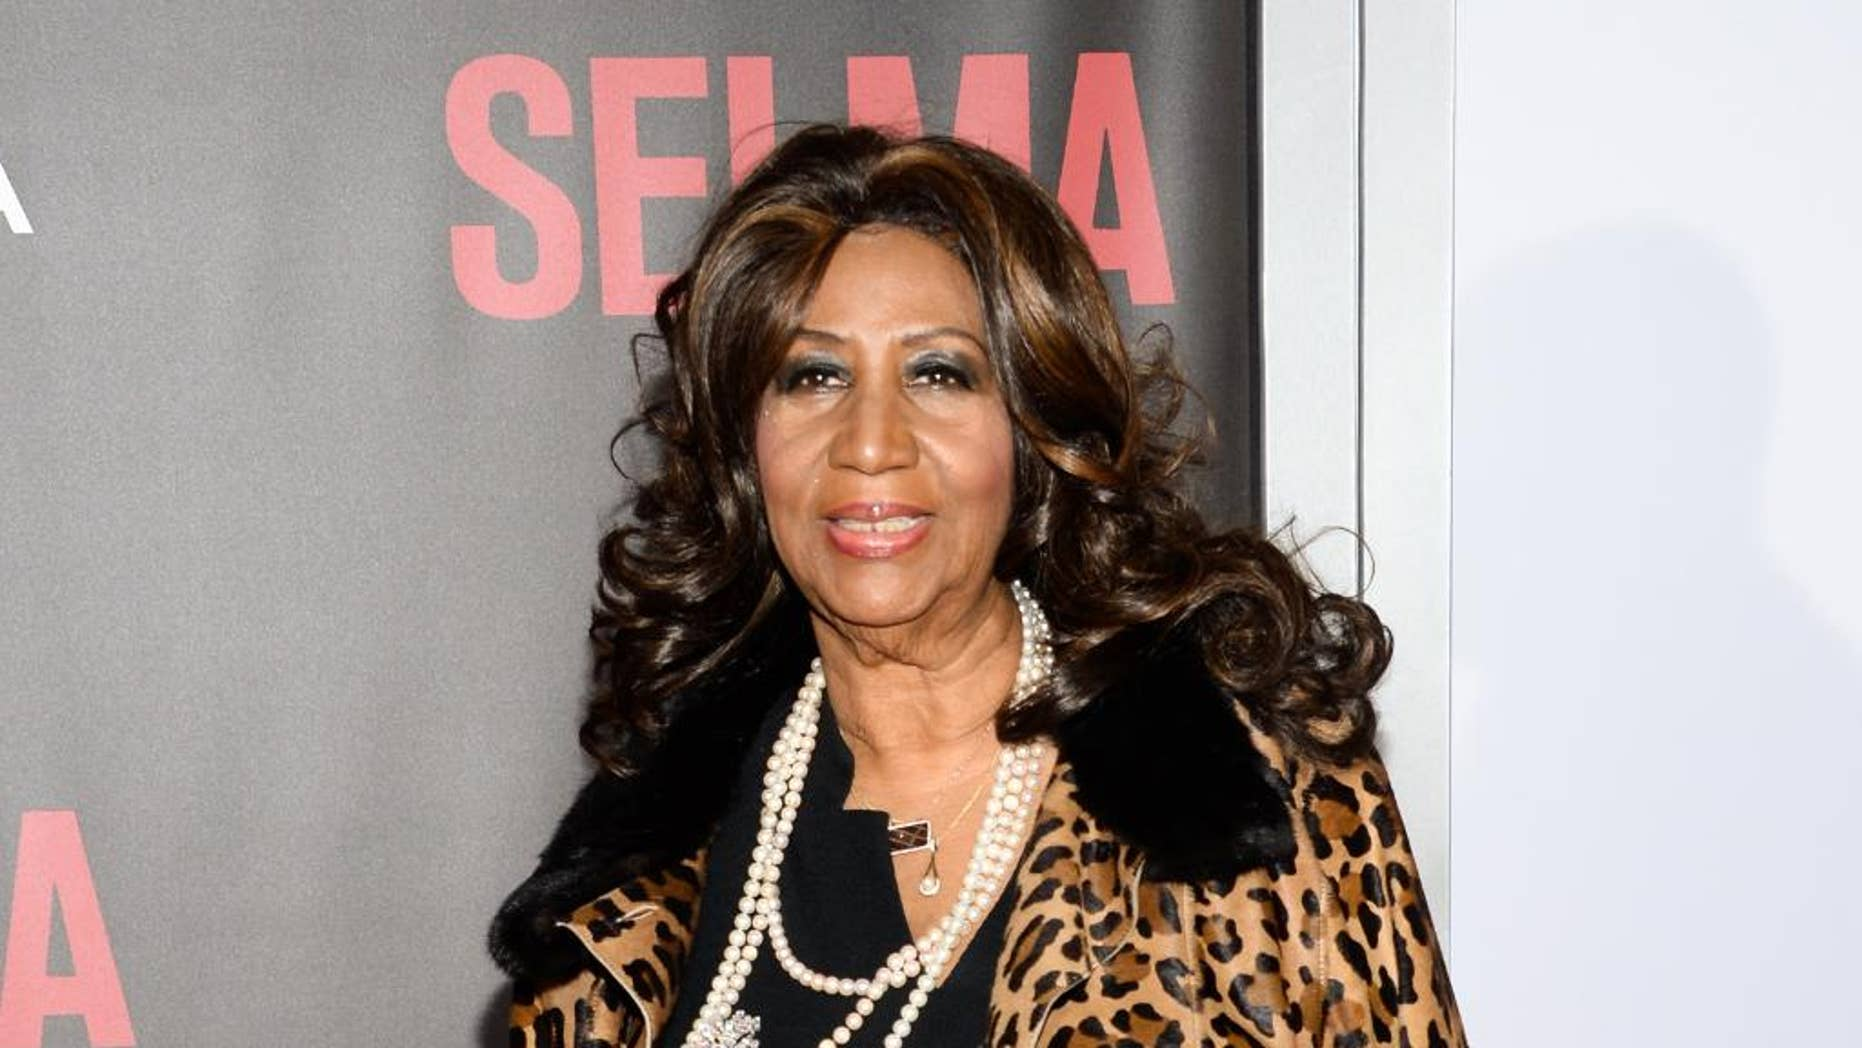 """FILE - In this Dec. 14, 2014 file photo, singer Aretha Franklin attends the premiere of """"Selma"""" in New York. Franklin is canceling her Friday night show in Las Vegas because of exhaustion. The 73-year-old said in a statement Tuesday, Aug. 11, 2015, that she has to reschedule the show at The Colosseum at Caesars Palace after driving her bus from Detroit to the West Coast for concerts. (Photo by Evan Agostini/Invision/AP, File)"""